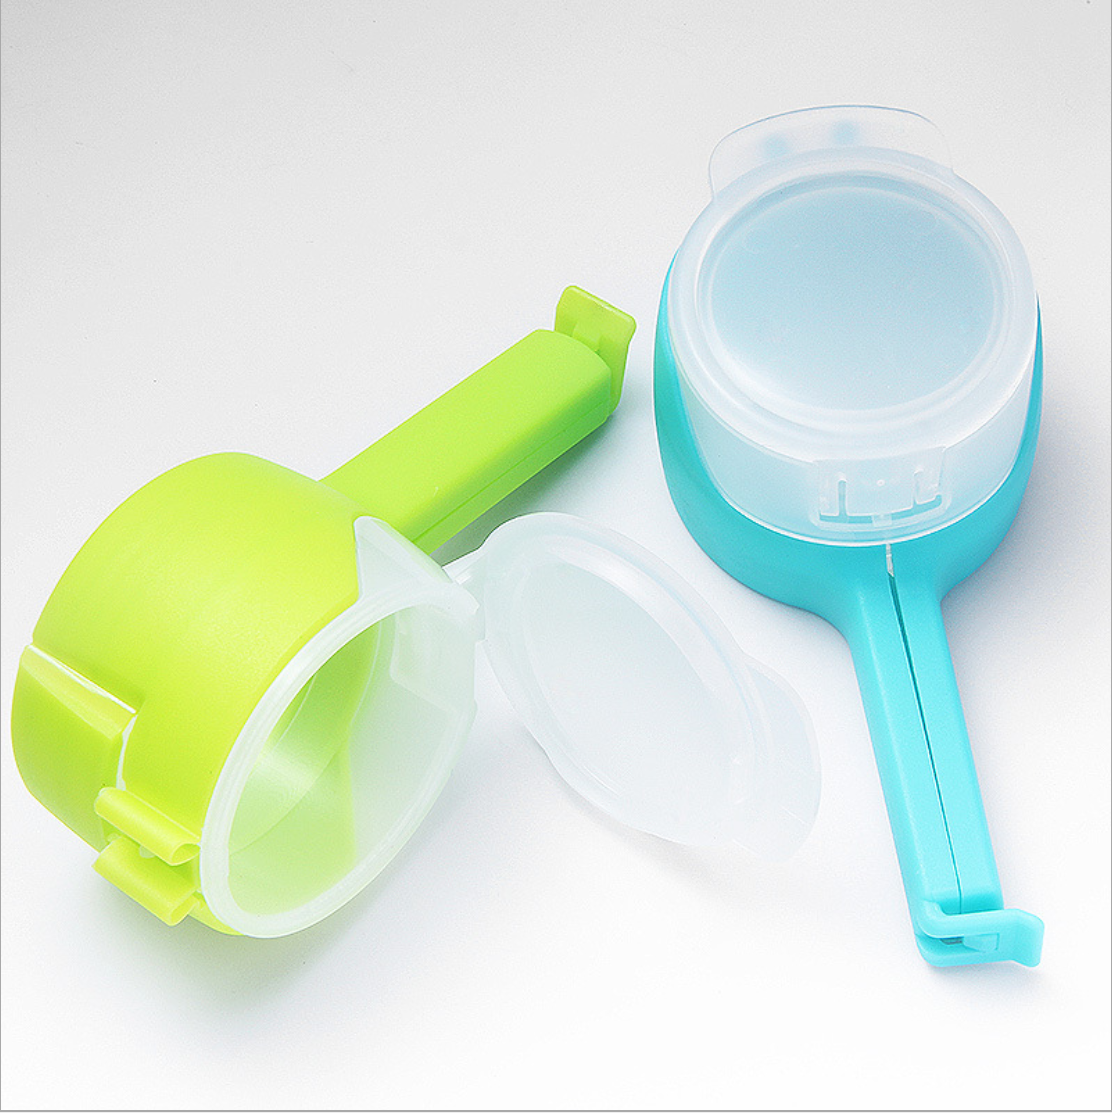 Toprank Kitchenware Food Bread Plastic Bag Closure Clip Food Bag Seal Clip Snack Clip With Pour Spout